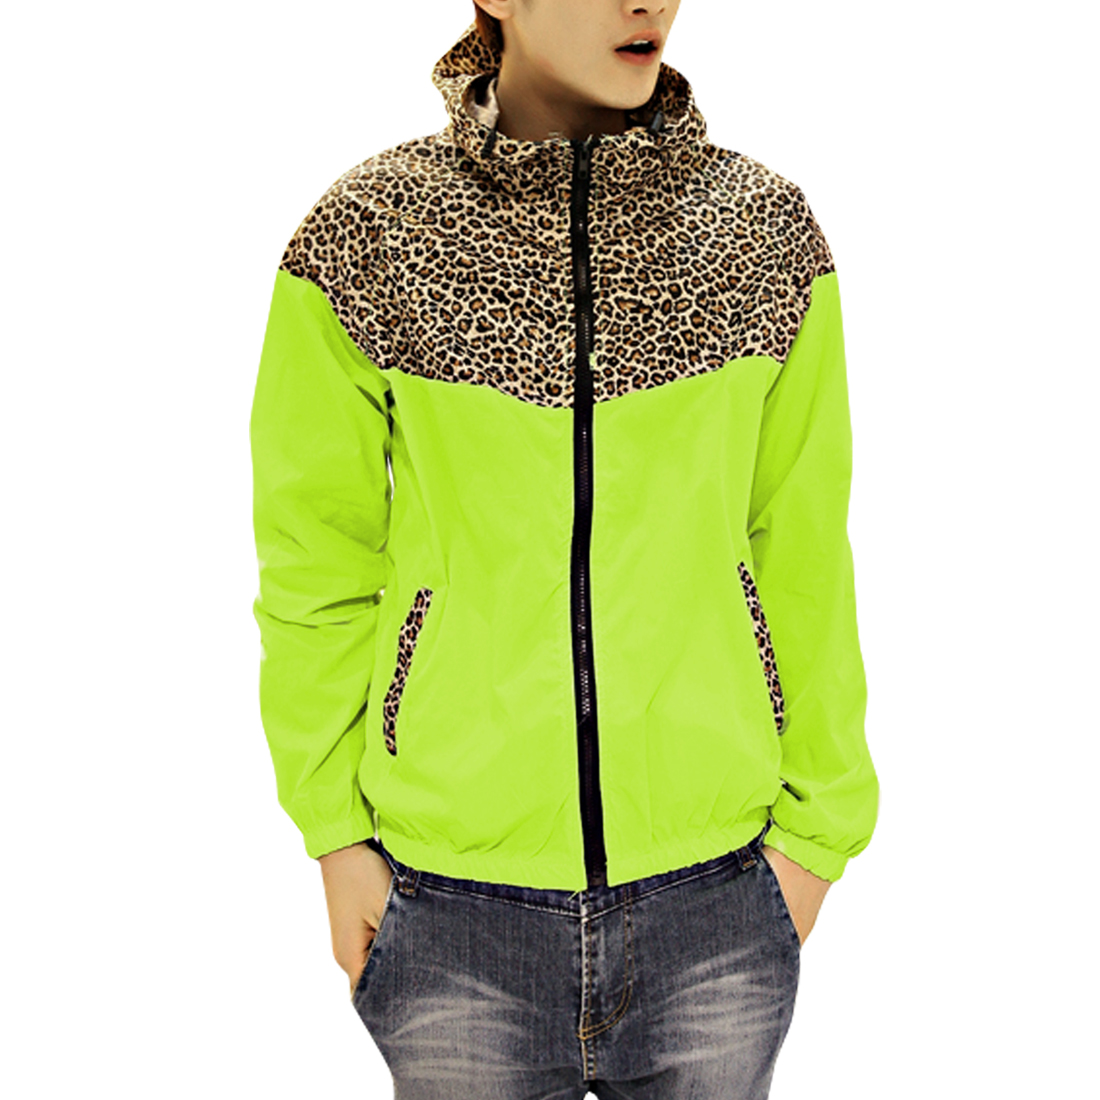 Men Leopard Prints Double Pocket Green Yellow Hooded Jacket M